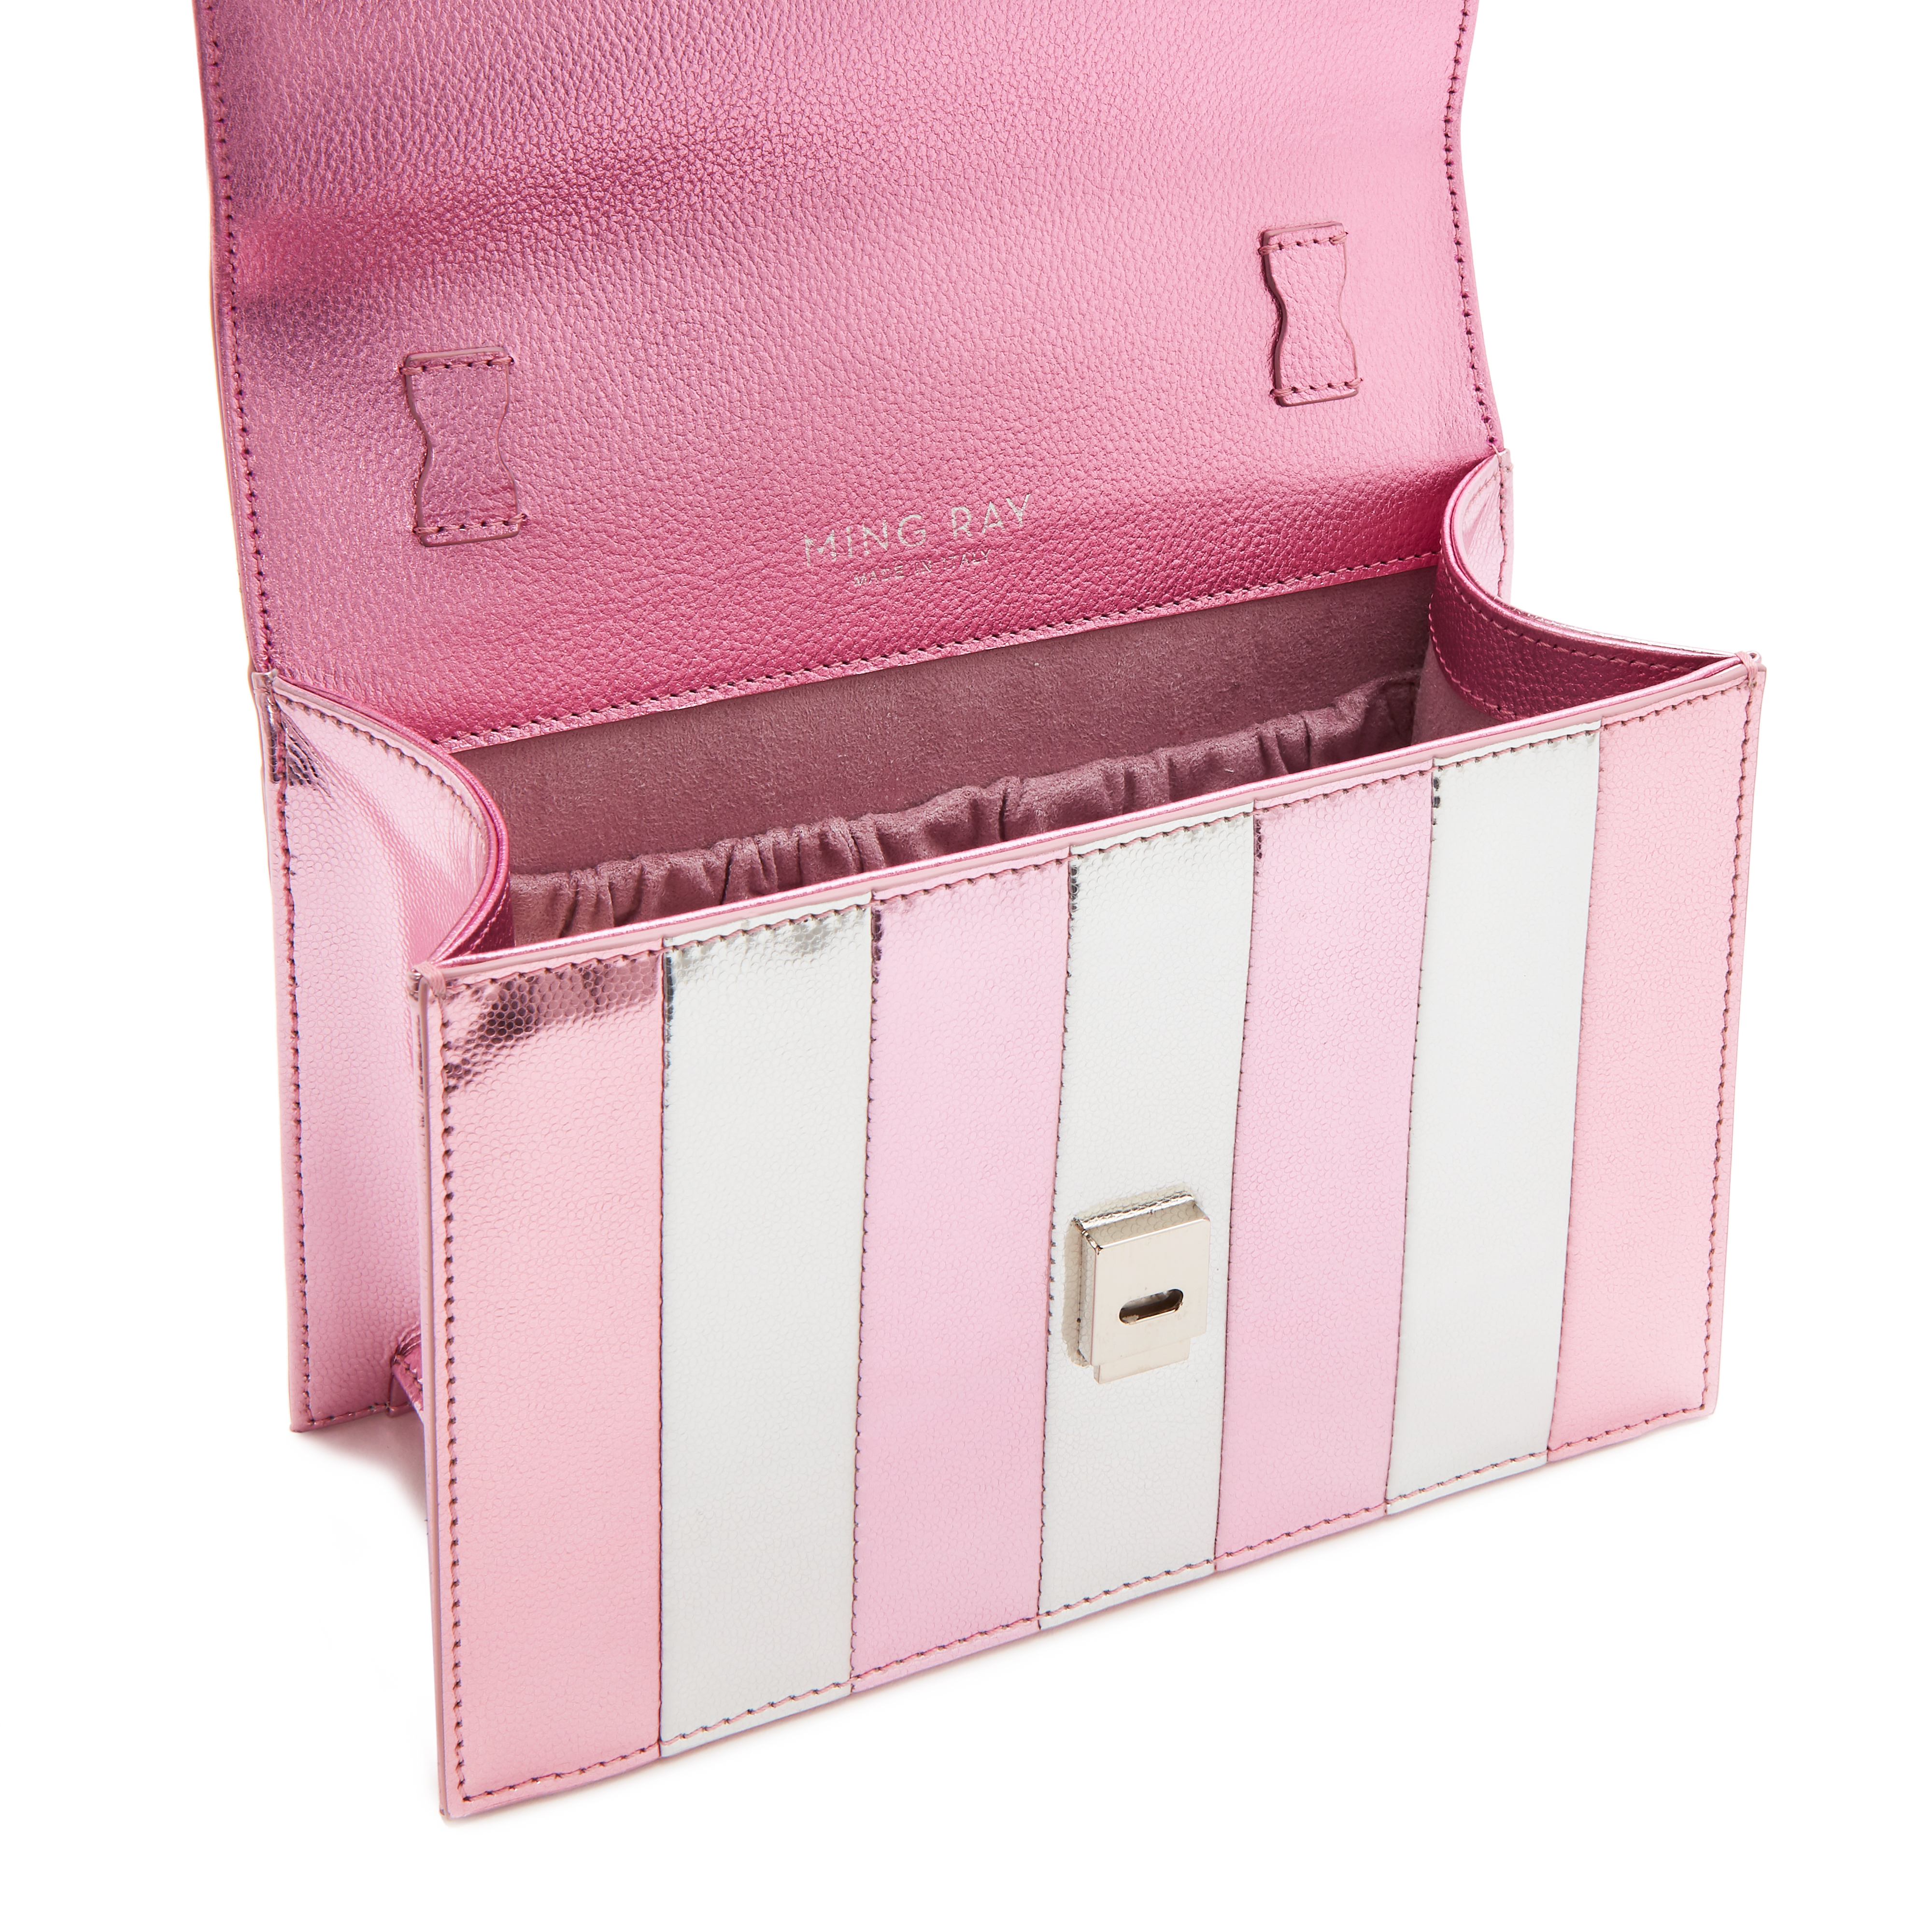 Joy pink silver leather rainbow handle bag Ming Ray | Bags | JOYPINK SILVER